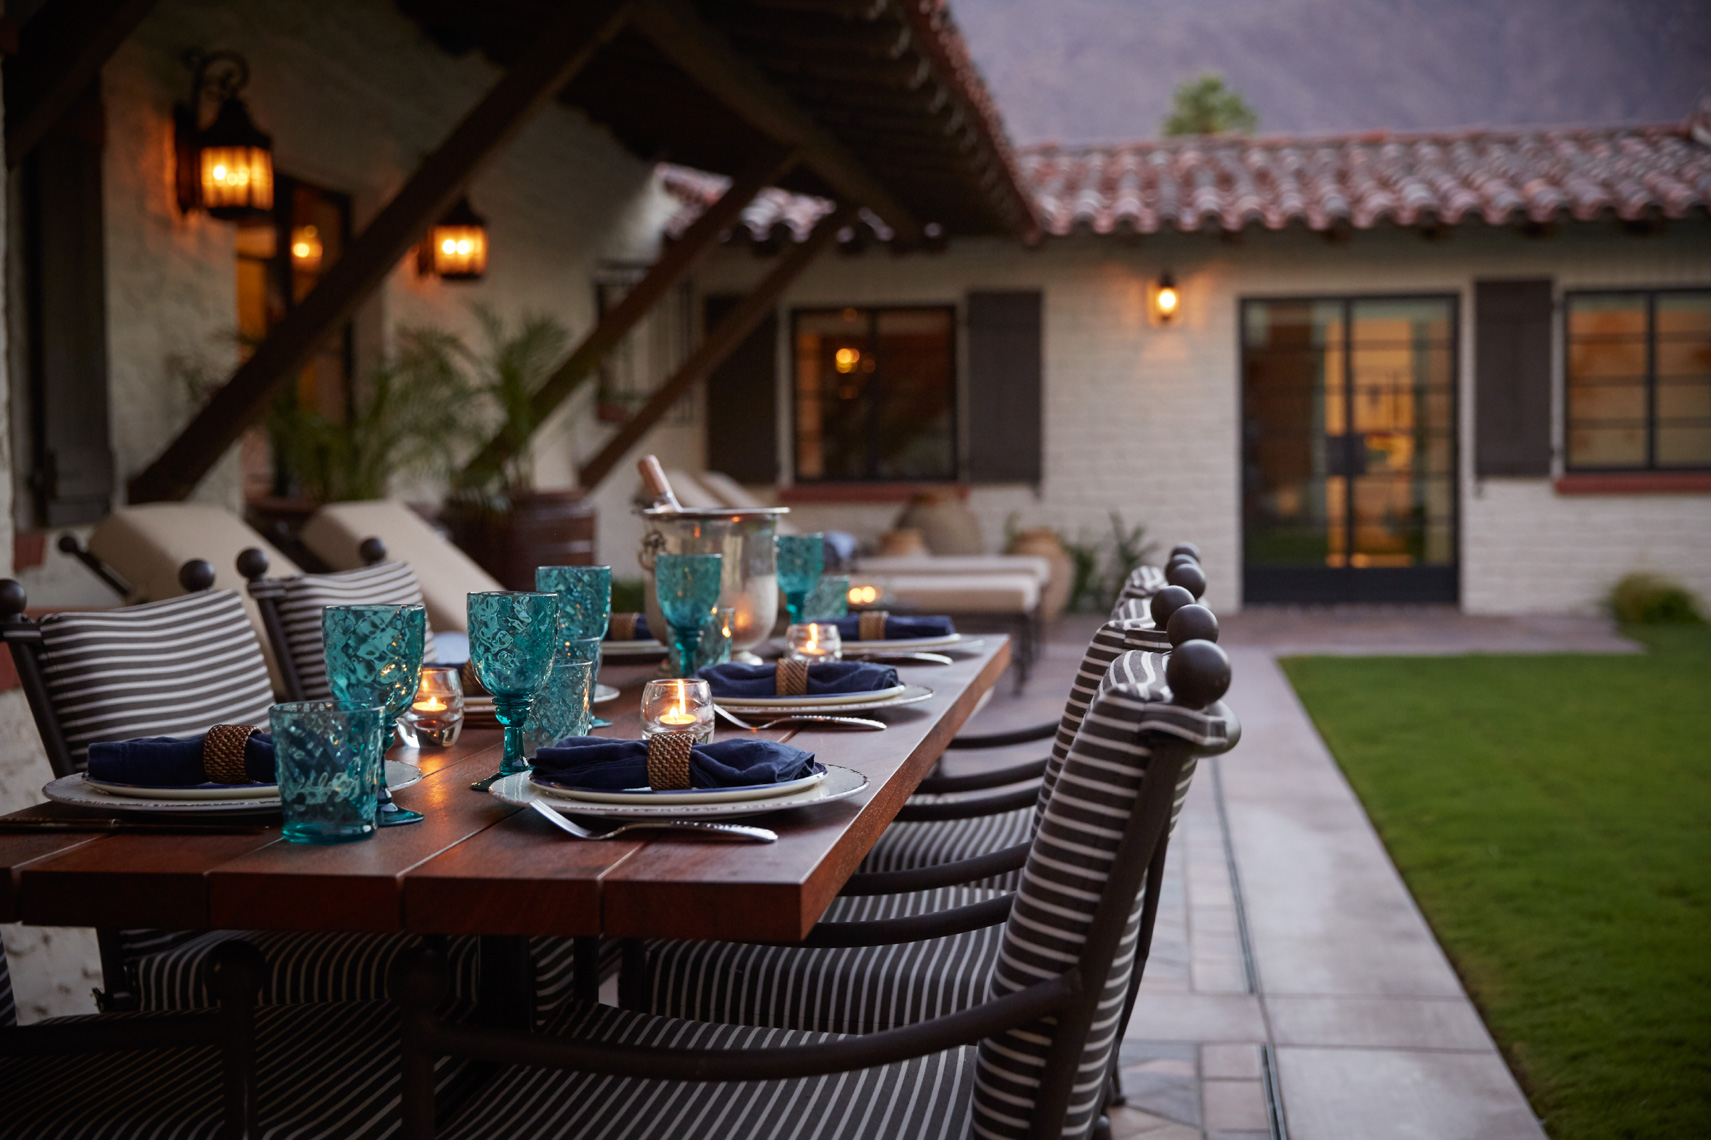 Courtyard dinning table set with glassware and chairs